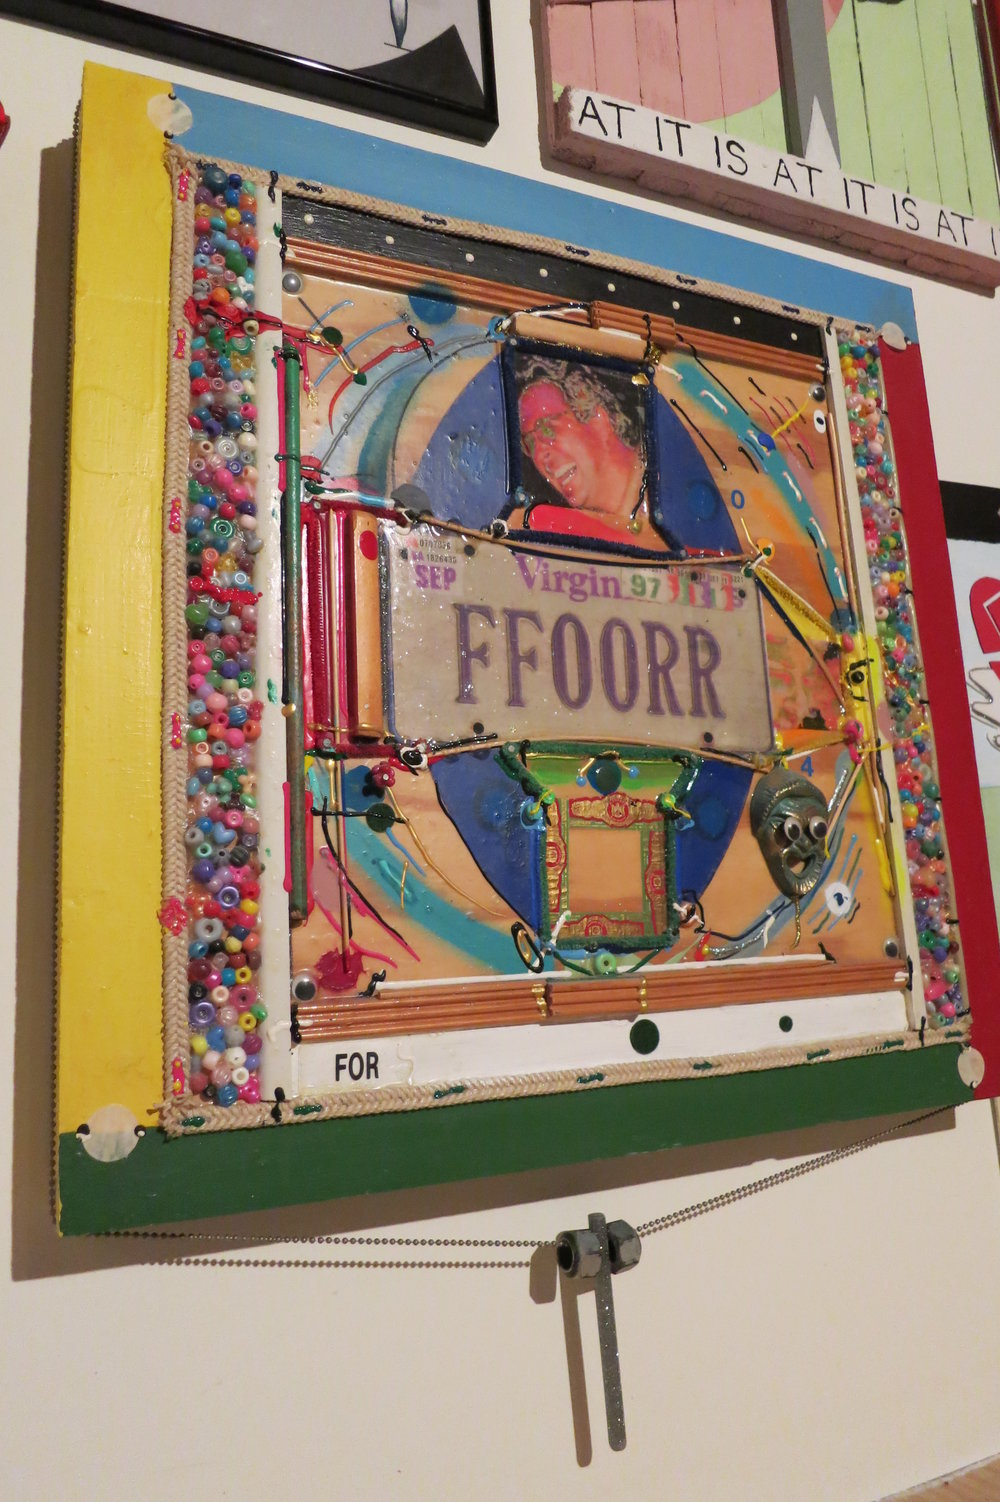 His For Plate is Full, 1997, after the original piece owned by the  Mississippi Museum of Art in Jackson, Mississippi